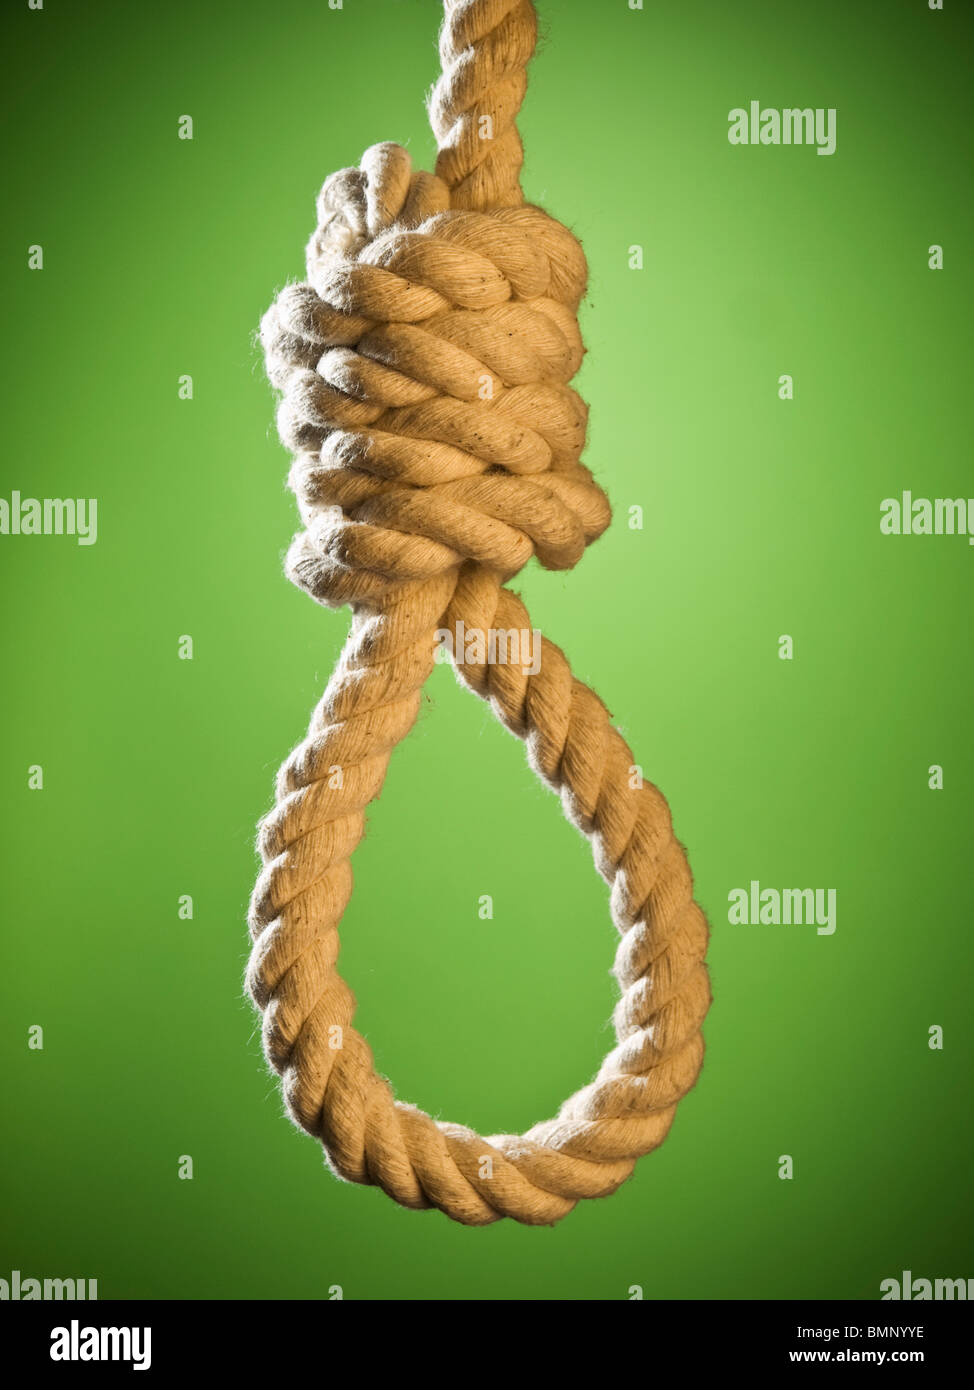 A hangman's noose over a green background. - Stock Image